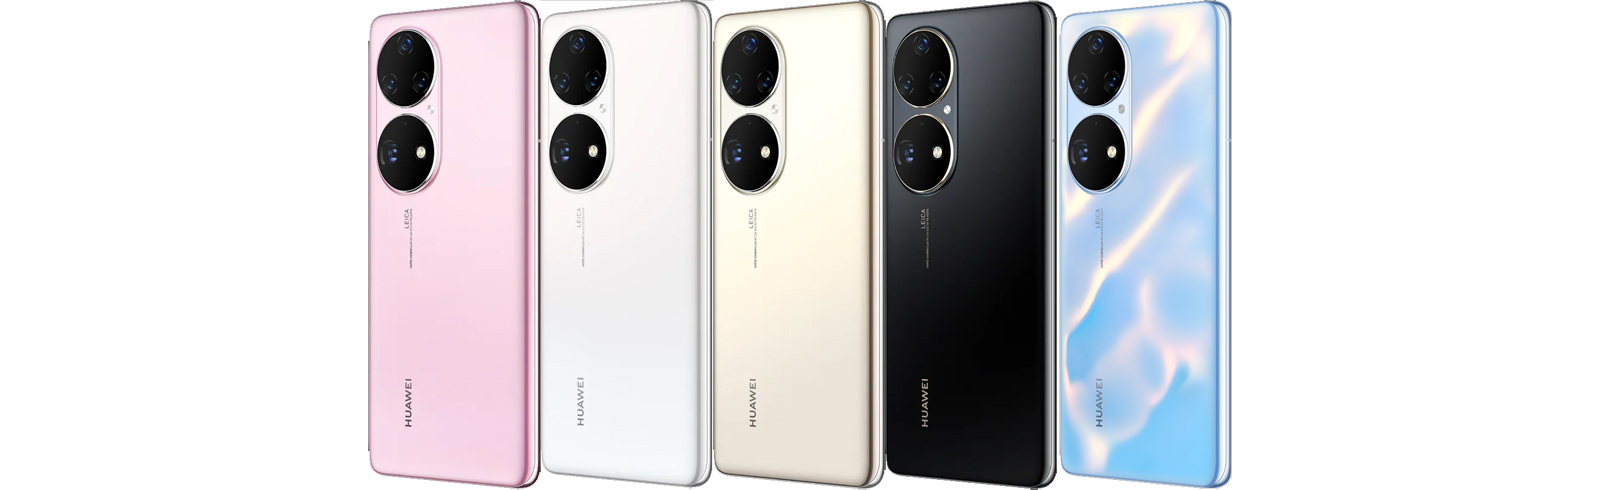 The Huawei P50 and Huawei P50 Pro are official - it's all about cameras